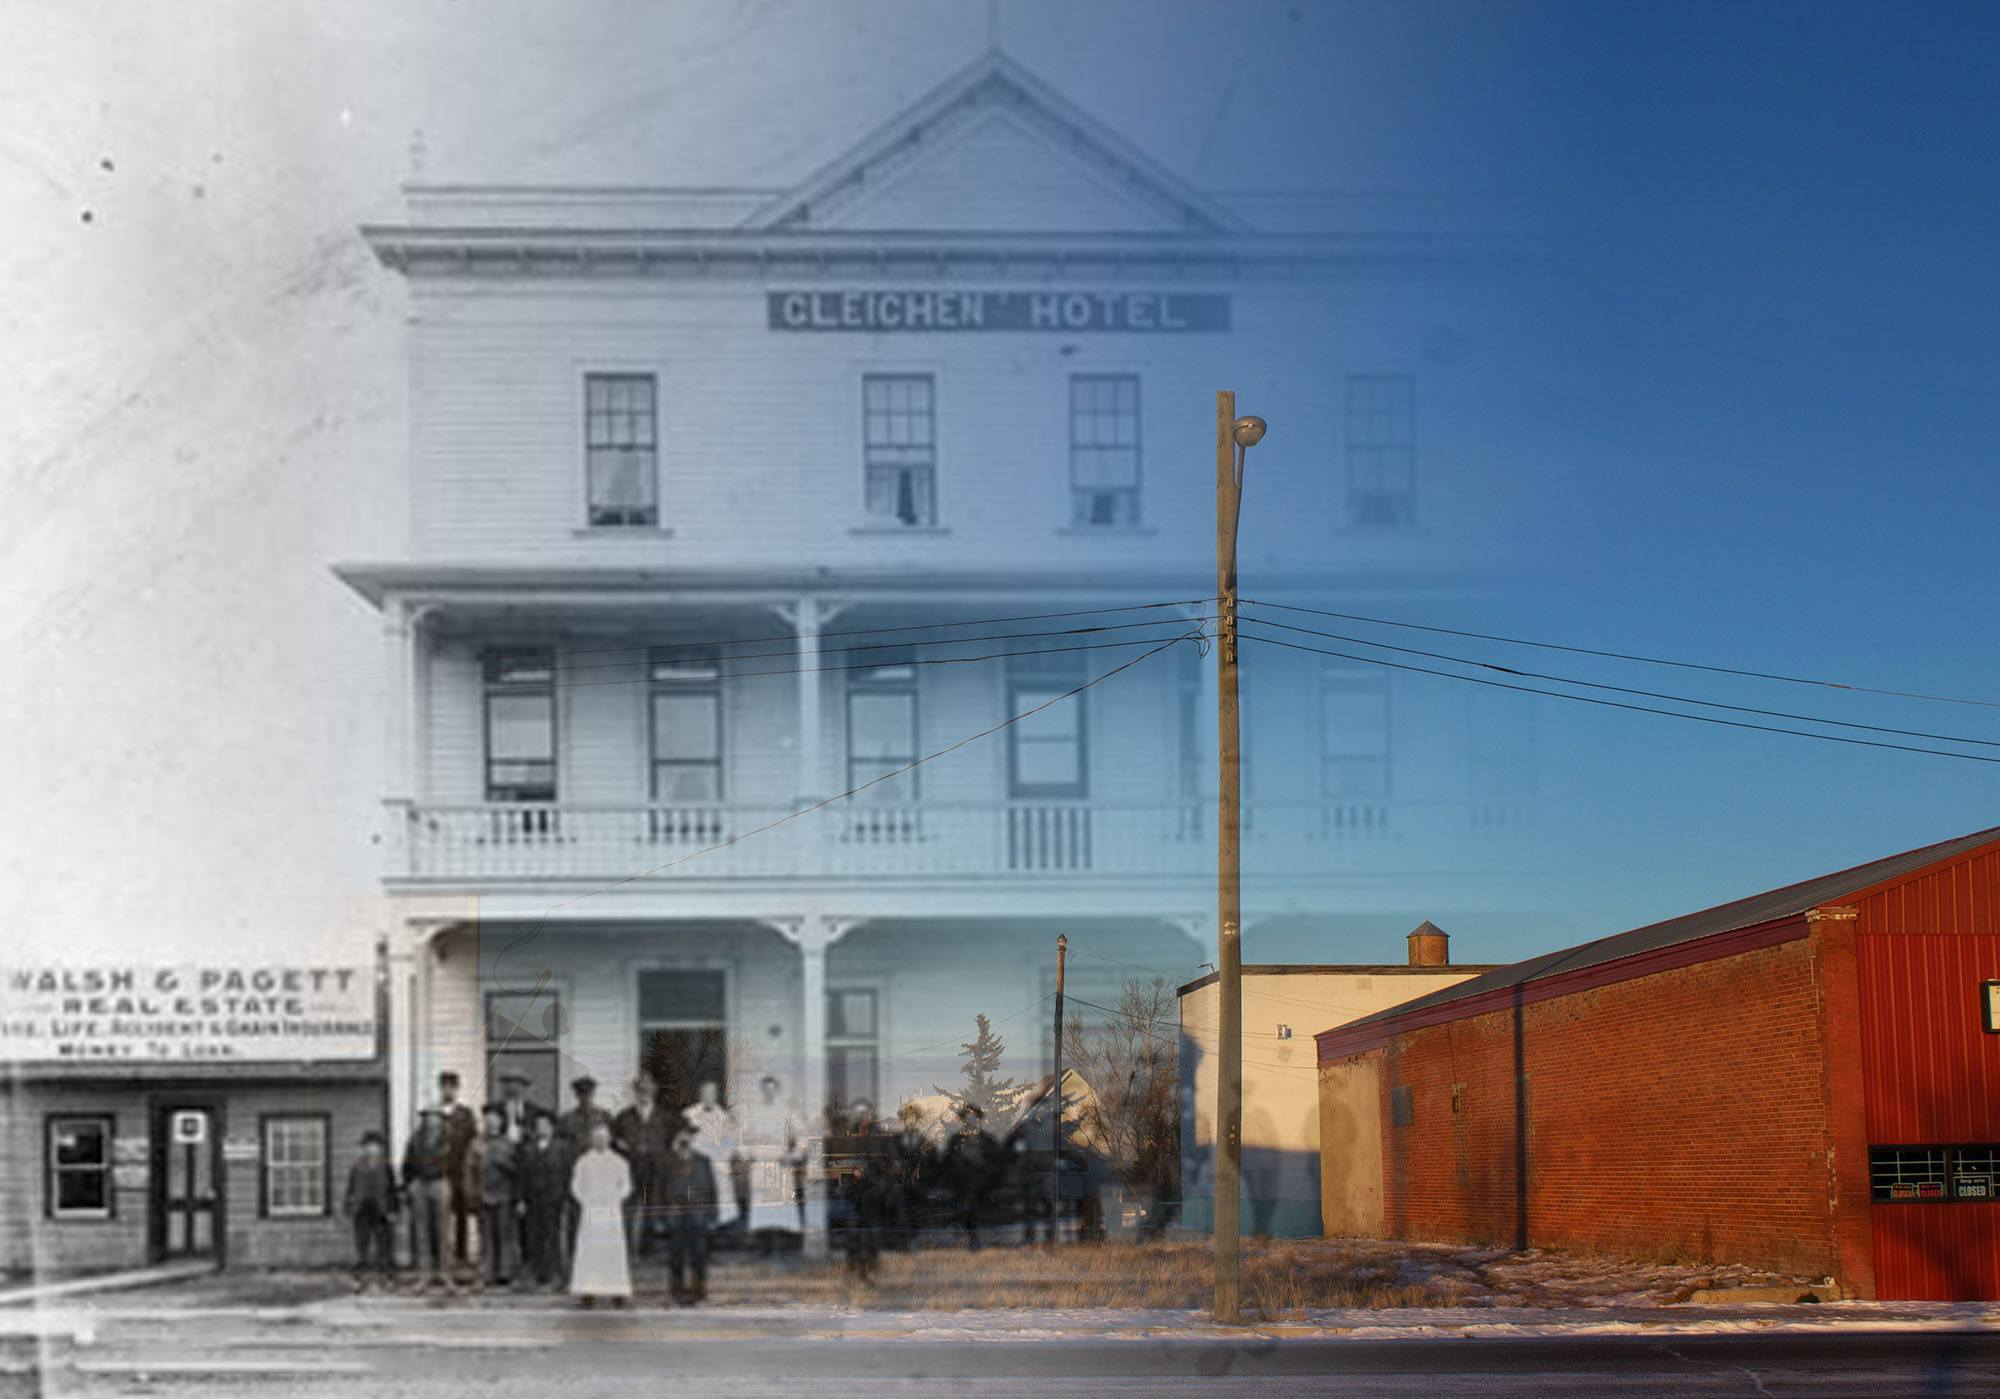 The Gleichen Hotel in 1910 (Glenbow Museum and Archives/On This Spot)